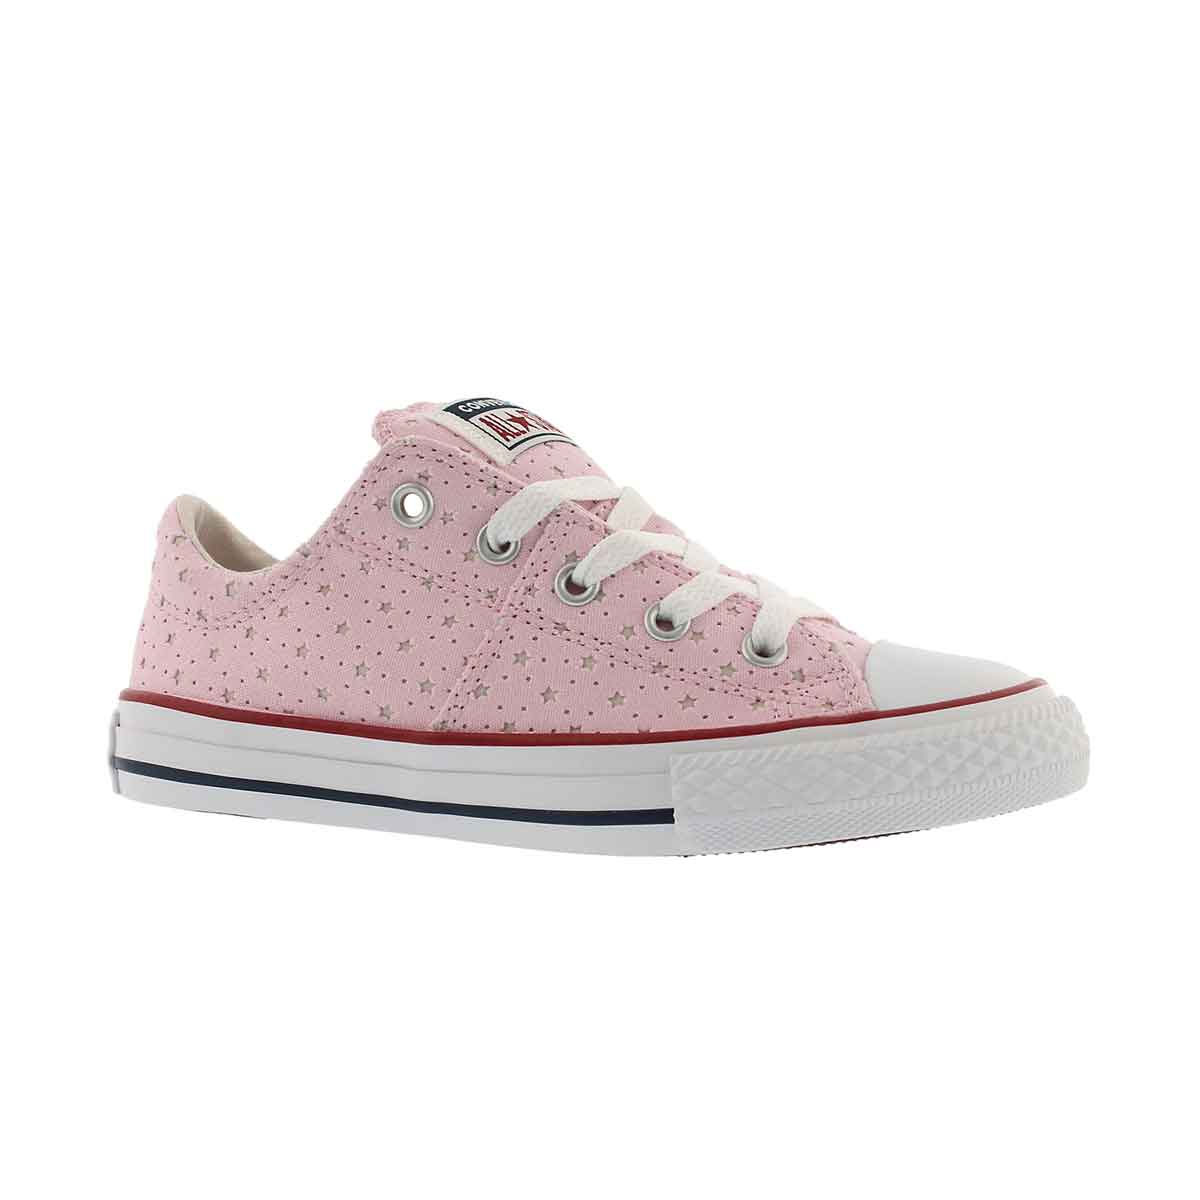 Girls' CT ALL STAR MADISON cherry blossom sneakers